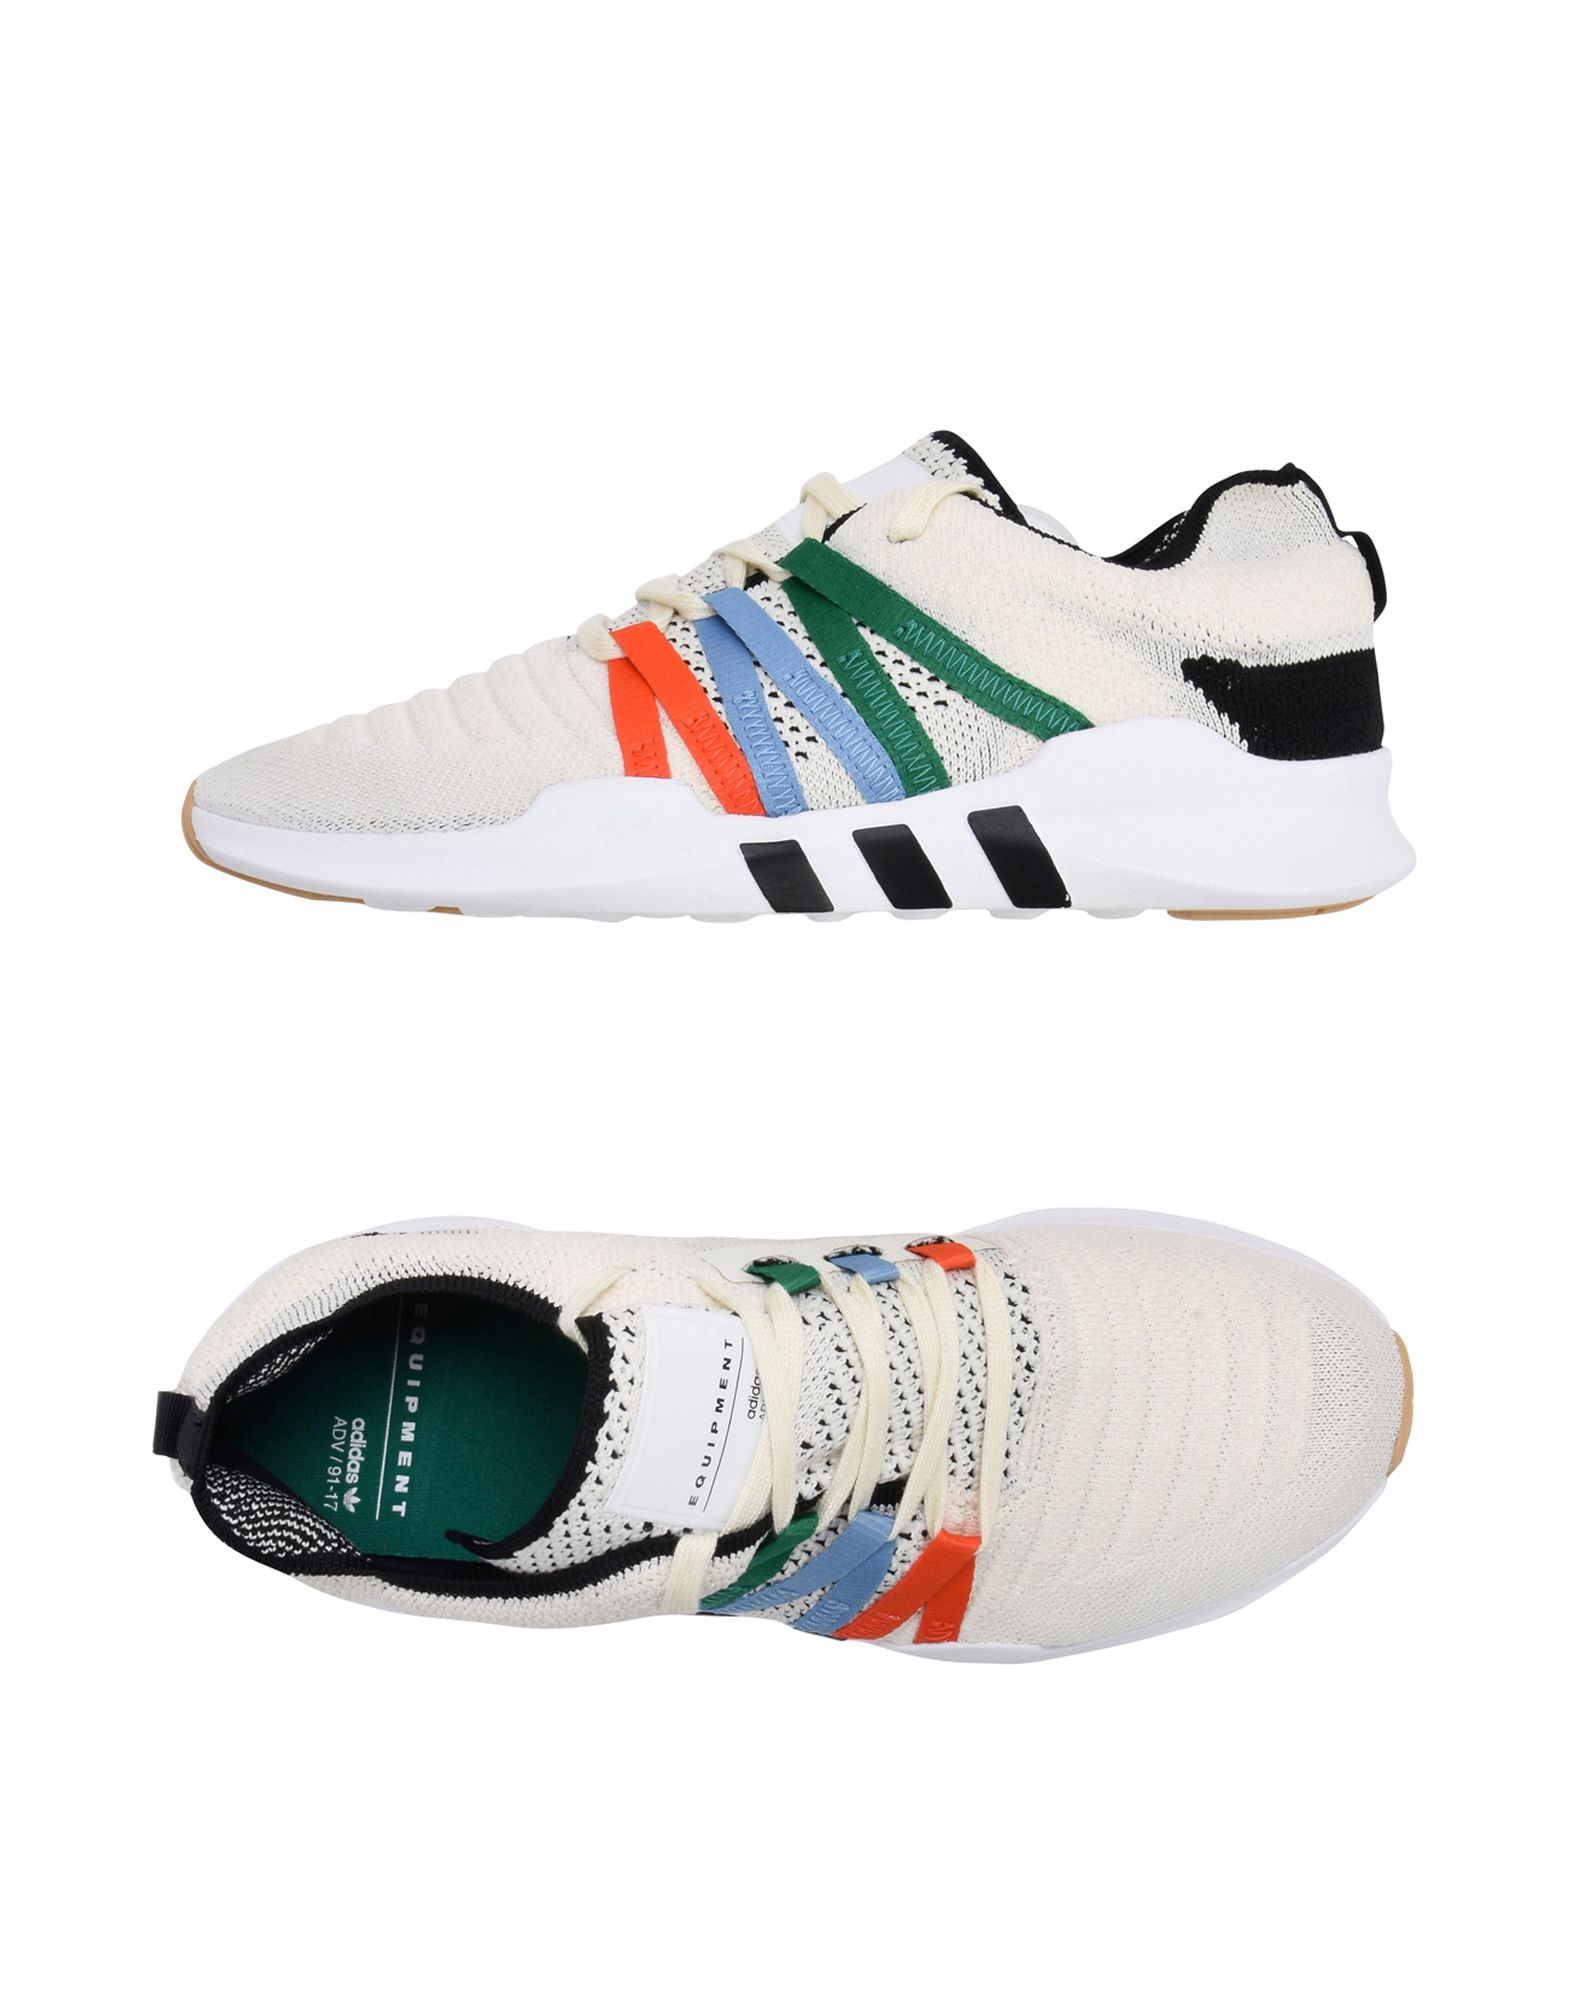 Sneakers Adidas Originals Eqt Racing Adv Pk W - Femme - Sneakers Adidas Originals sur